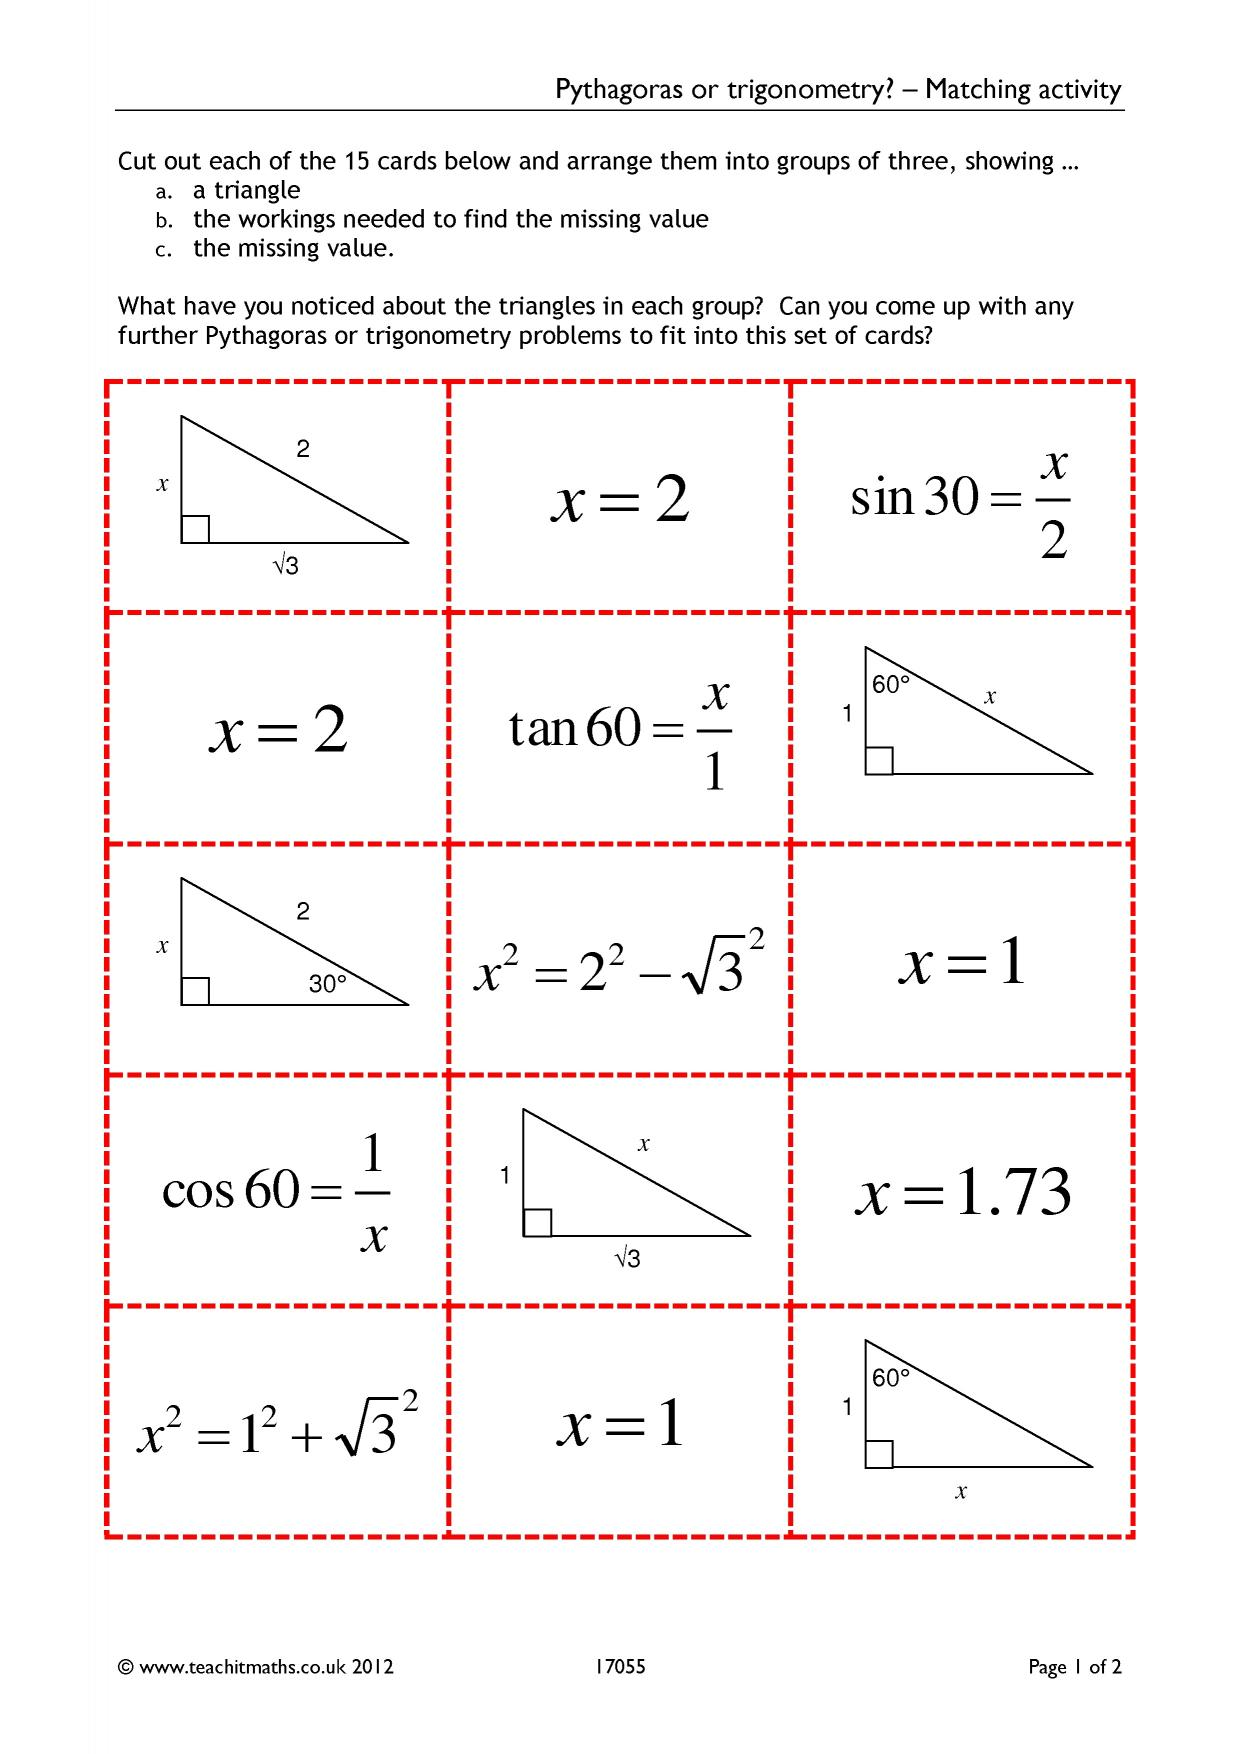 Trigonometry rich task 1 preview array pythagoras or trigonometry matching activity rh teachitmaths fandeluxe Choice Image